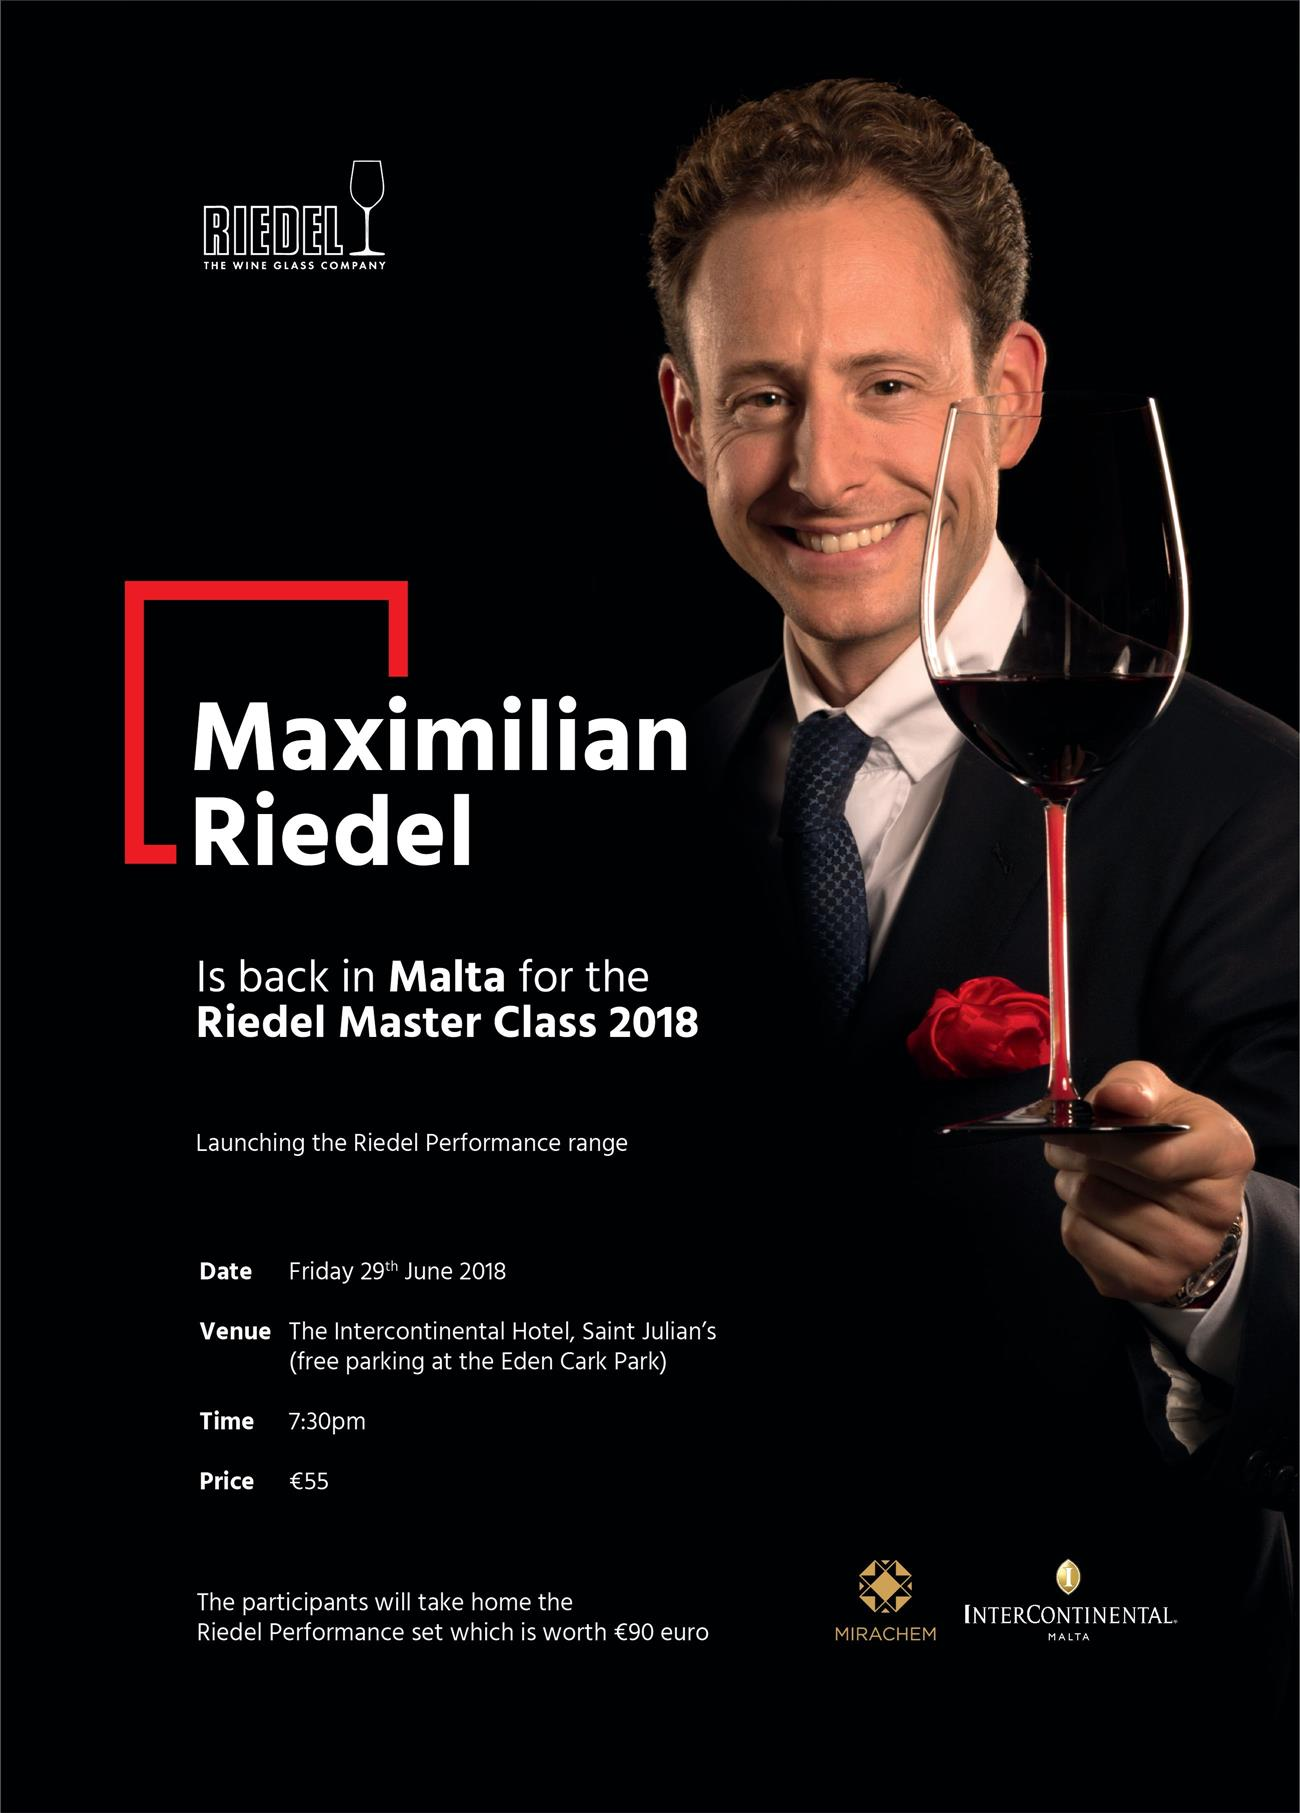 The Riedel Masterclass 2018 – Featuring Maximilian Riedel flyer